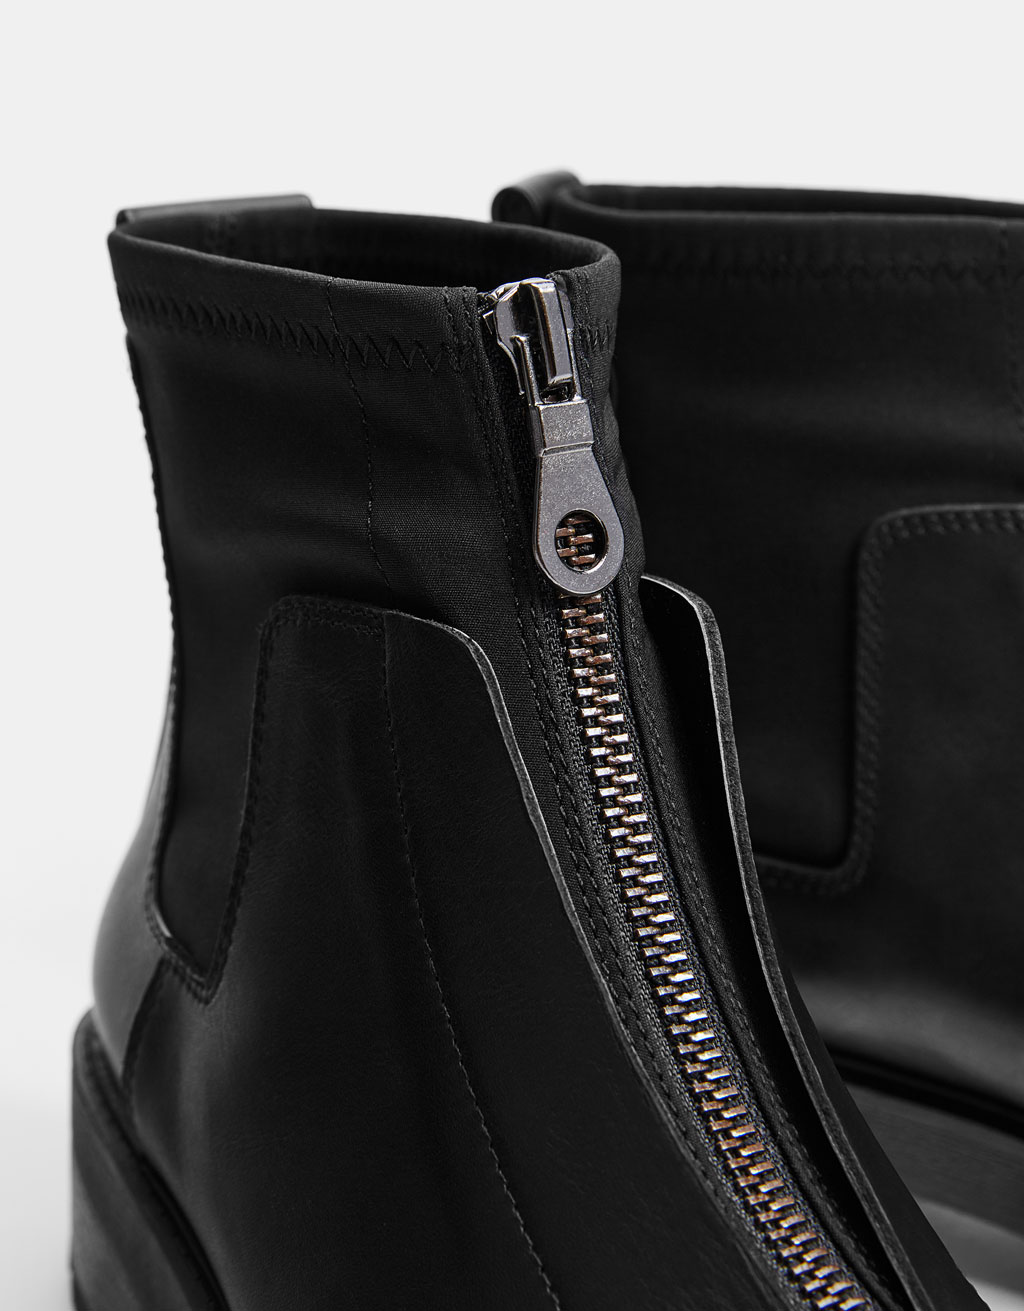 LEATHER zip-up ankle boots - Best Sellers - Bershka United Kingdom 968f6ded601c2